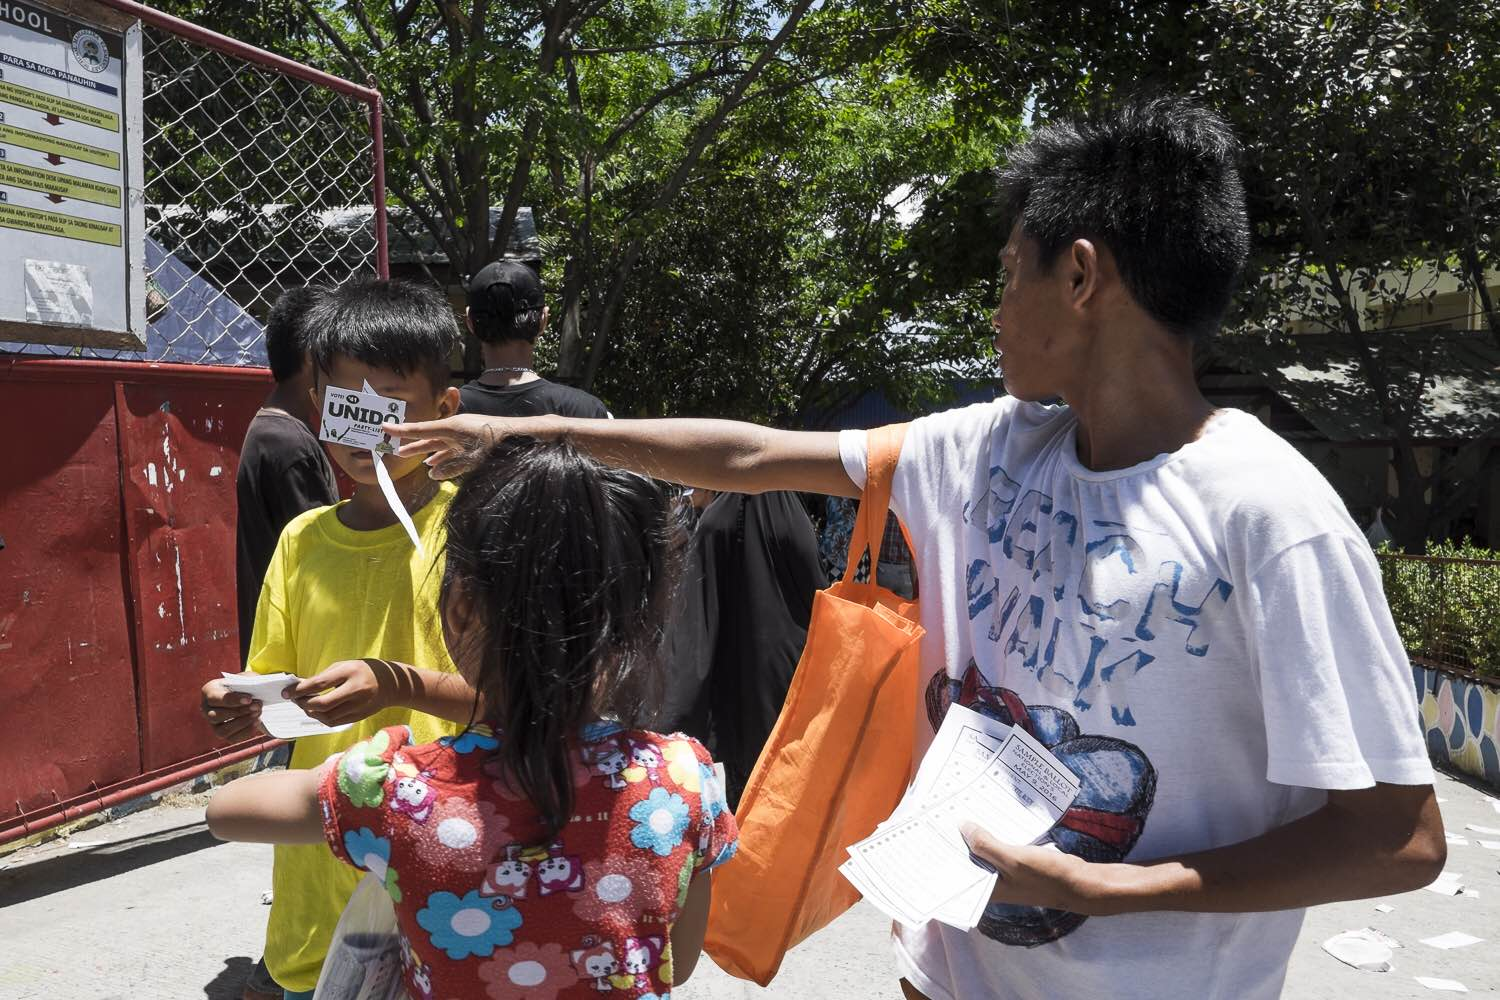 CHILDREN. Underage children are seen distributing campaign materials and sample ballots near a precinct in Taguig. Photo by Pat Nabong/Rappler